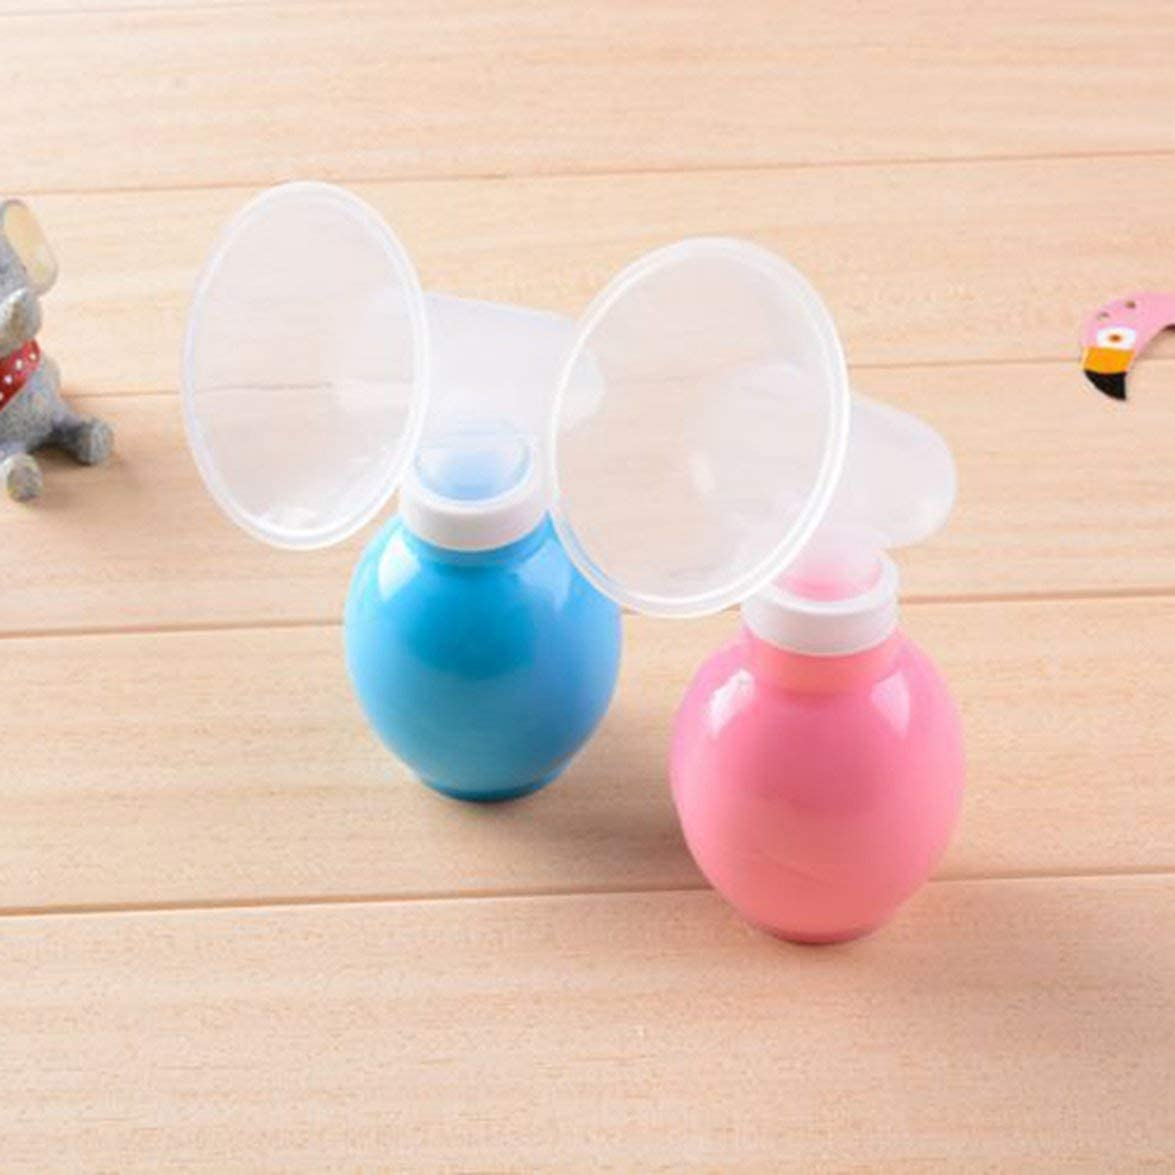 Pandamama Powerful and Simple Manual Breast Pump Silicone Ball Safe and Non-Toxic Silicone Artifact Nipple Suction Container